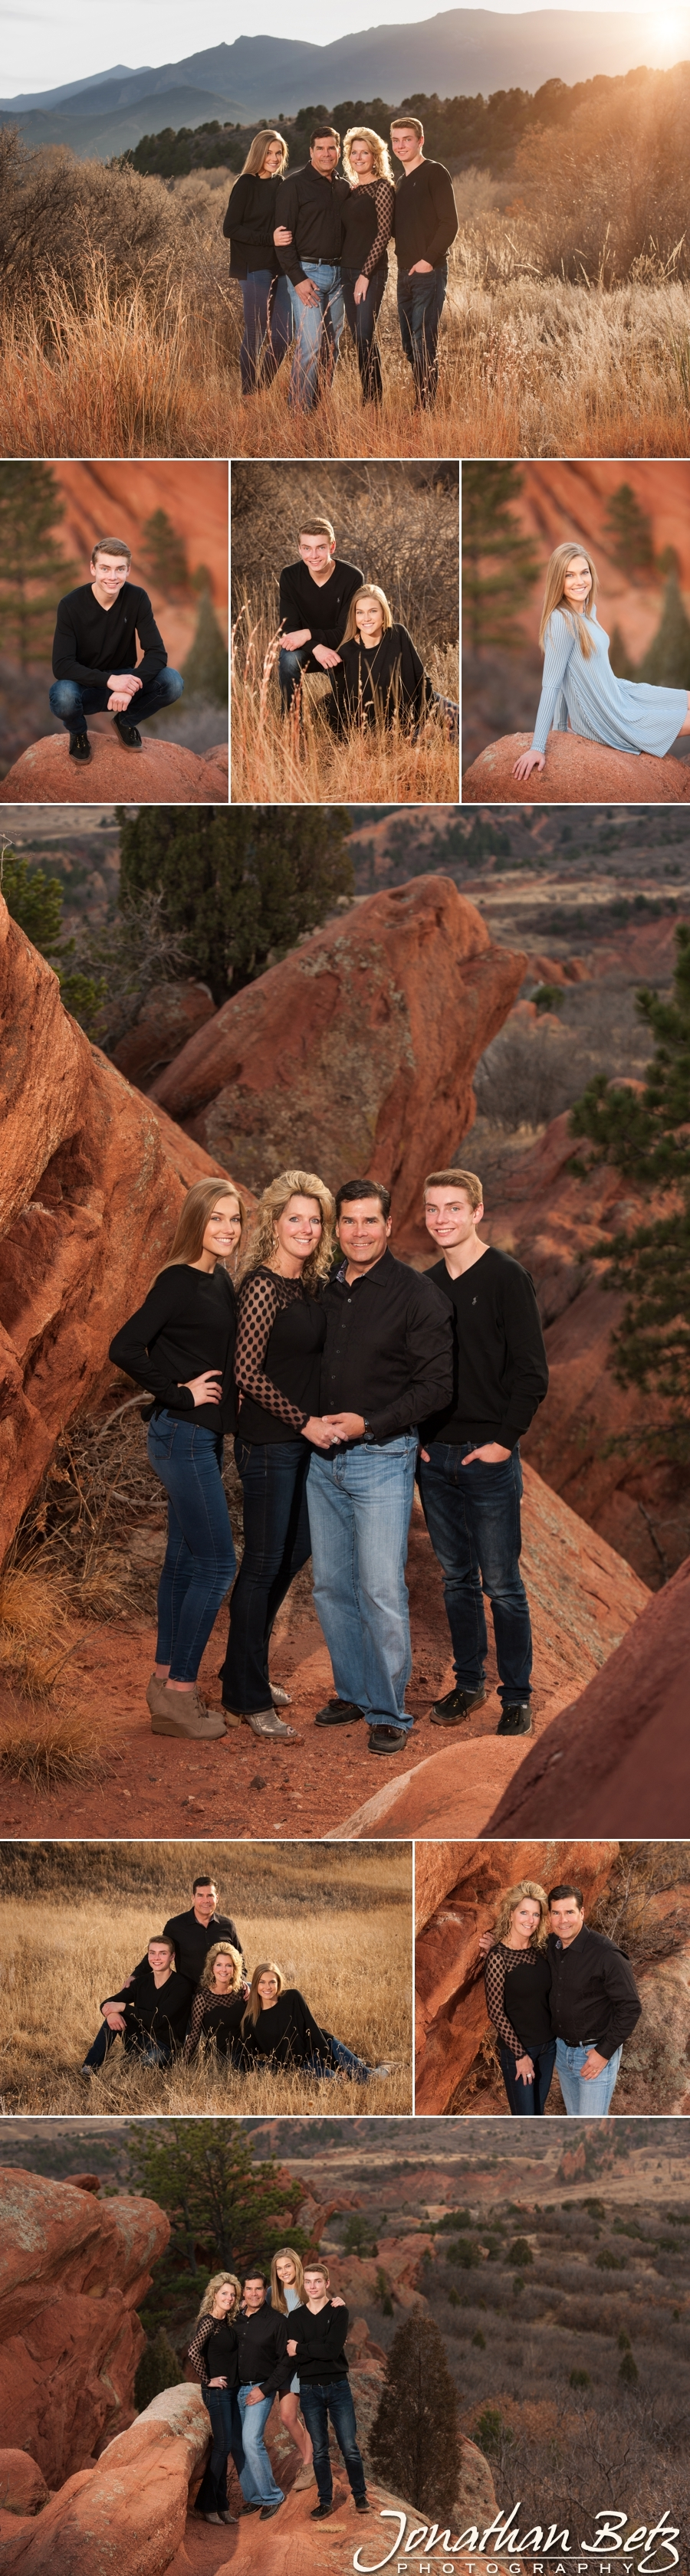 Colorado Springs Family Photographer Outdoor Family Pictures Jonathan Betz Photography 1